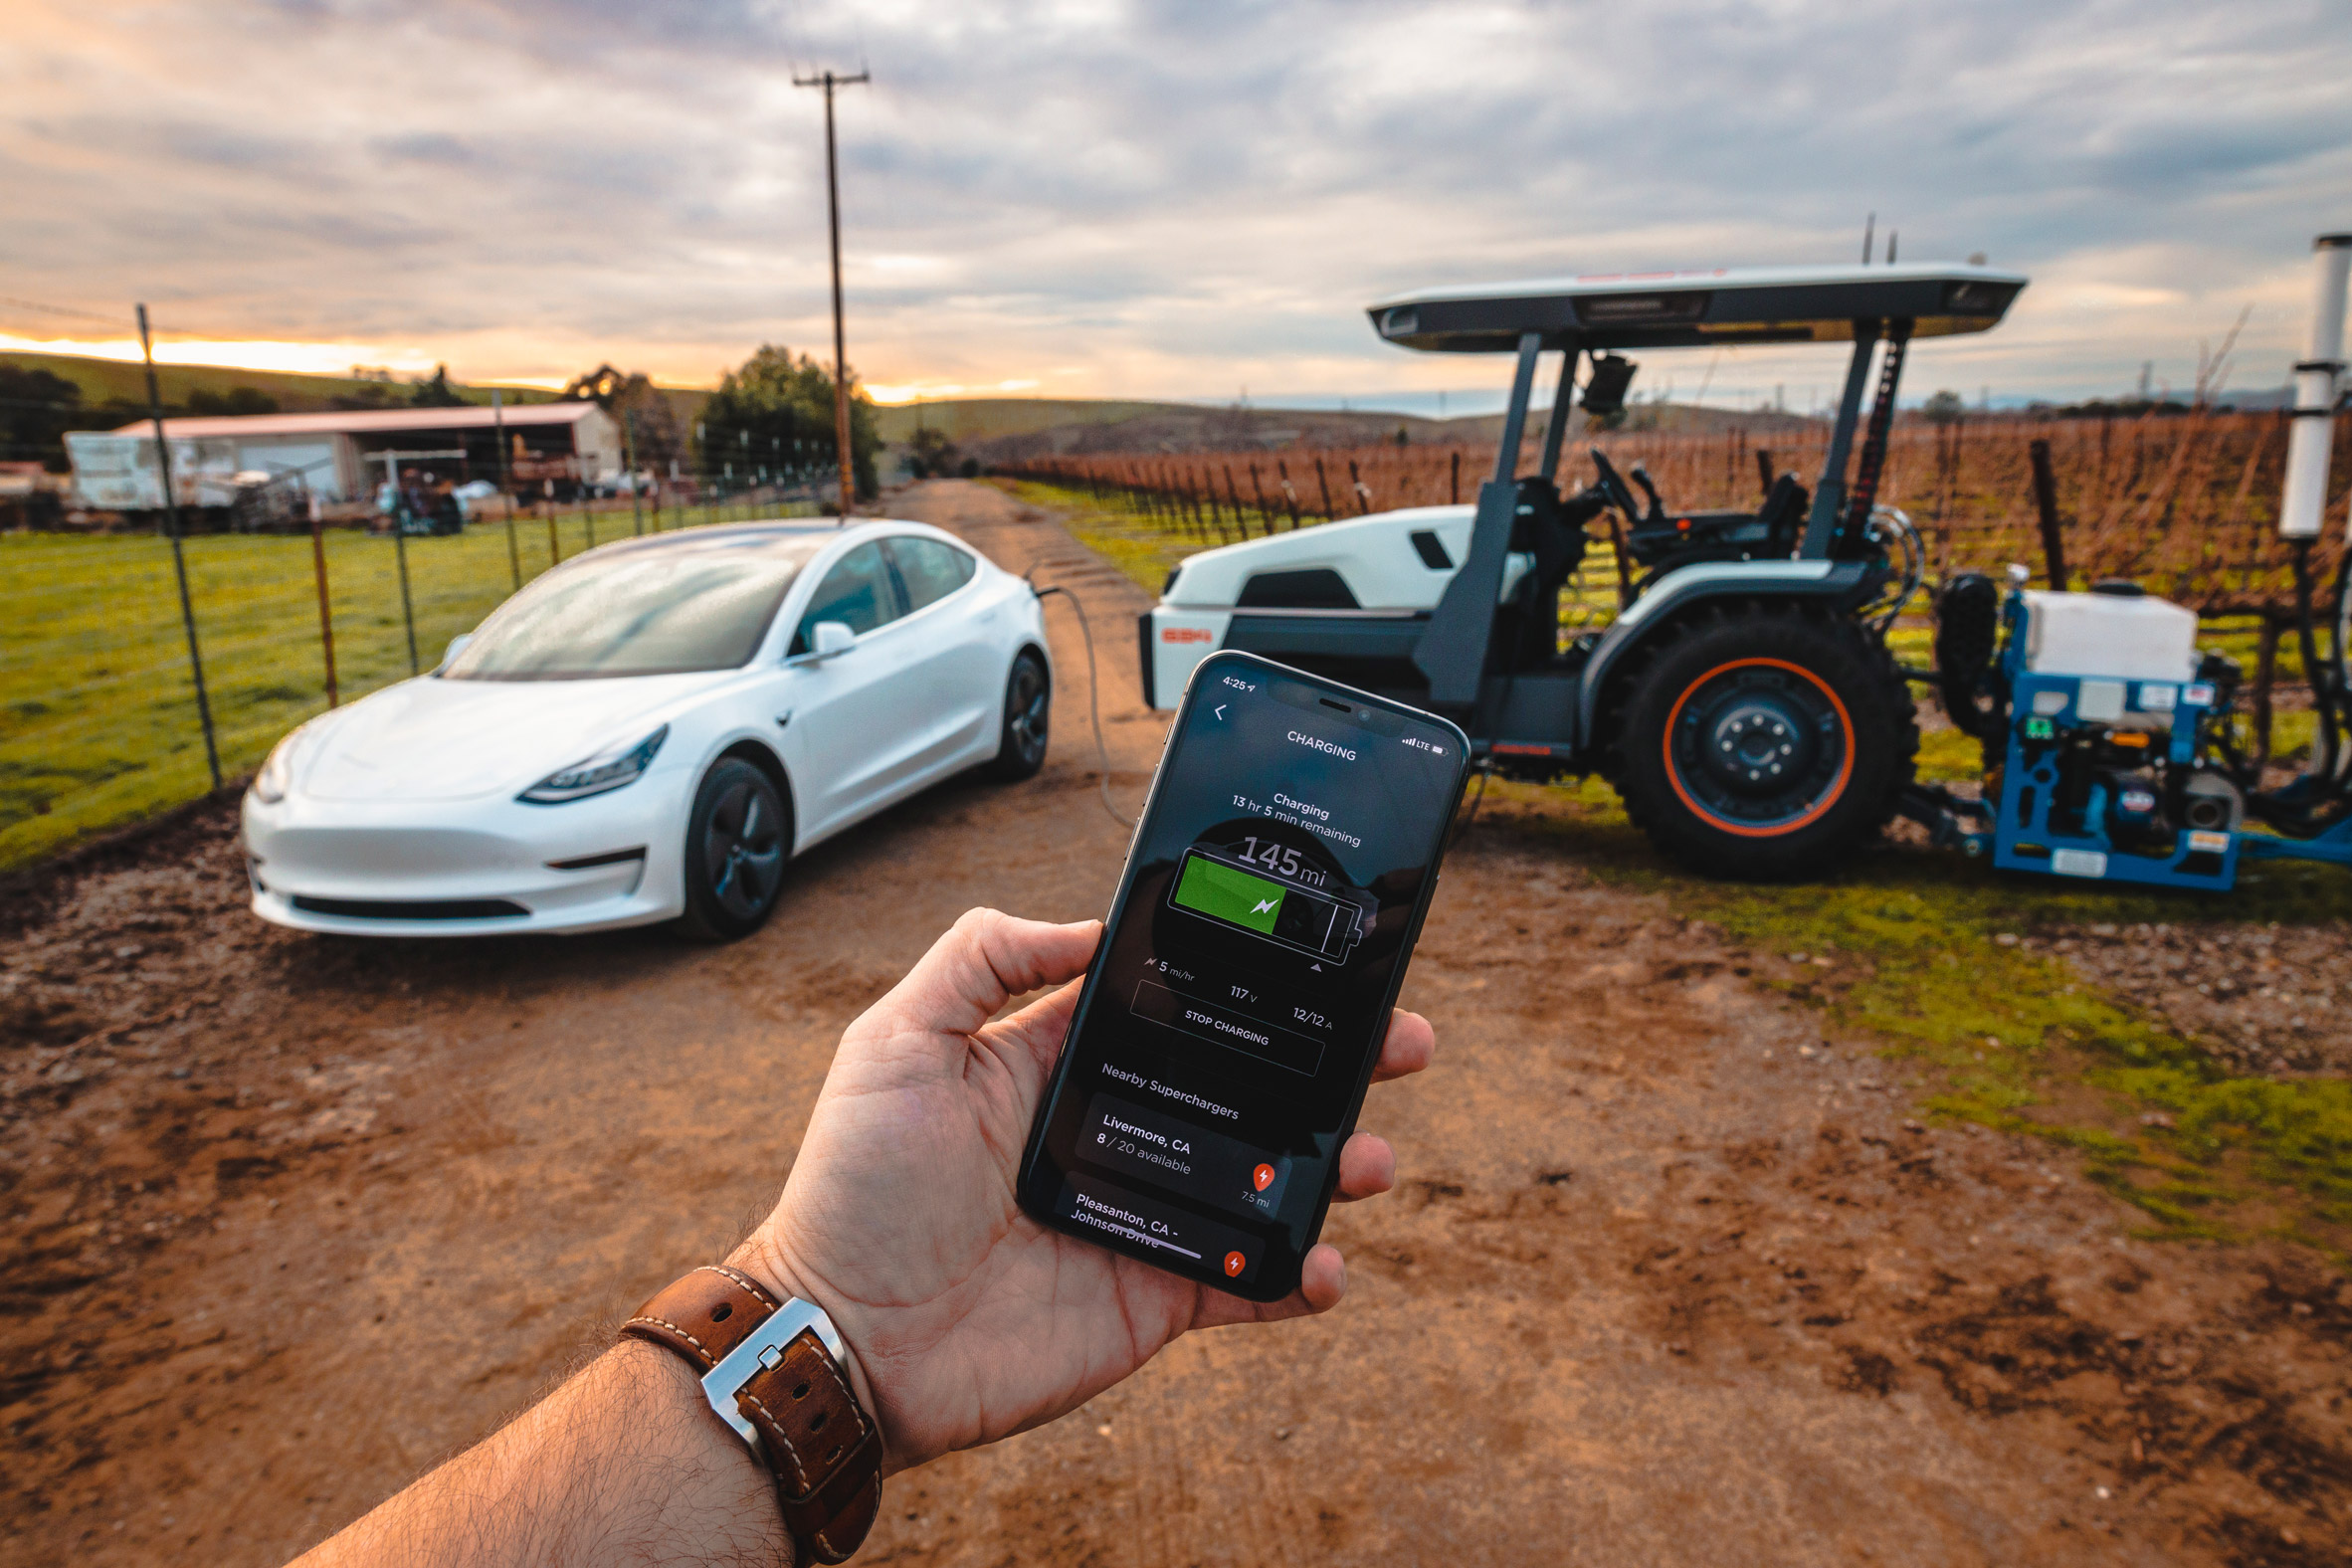 The fully electric and autonomous Monarch Tractor can connect to users' smartphone